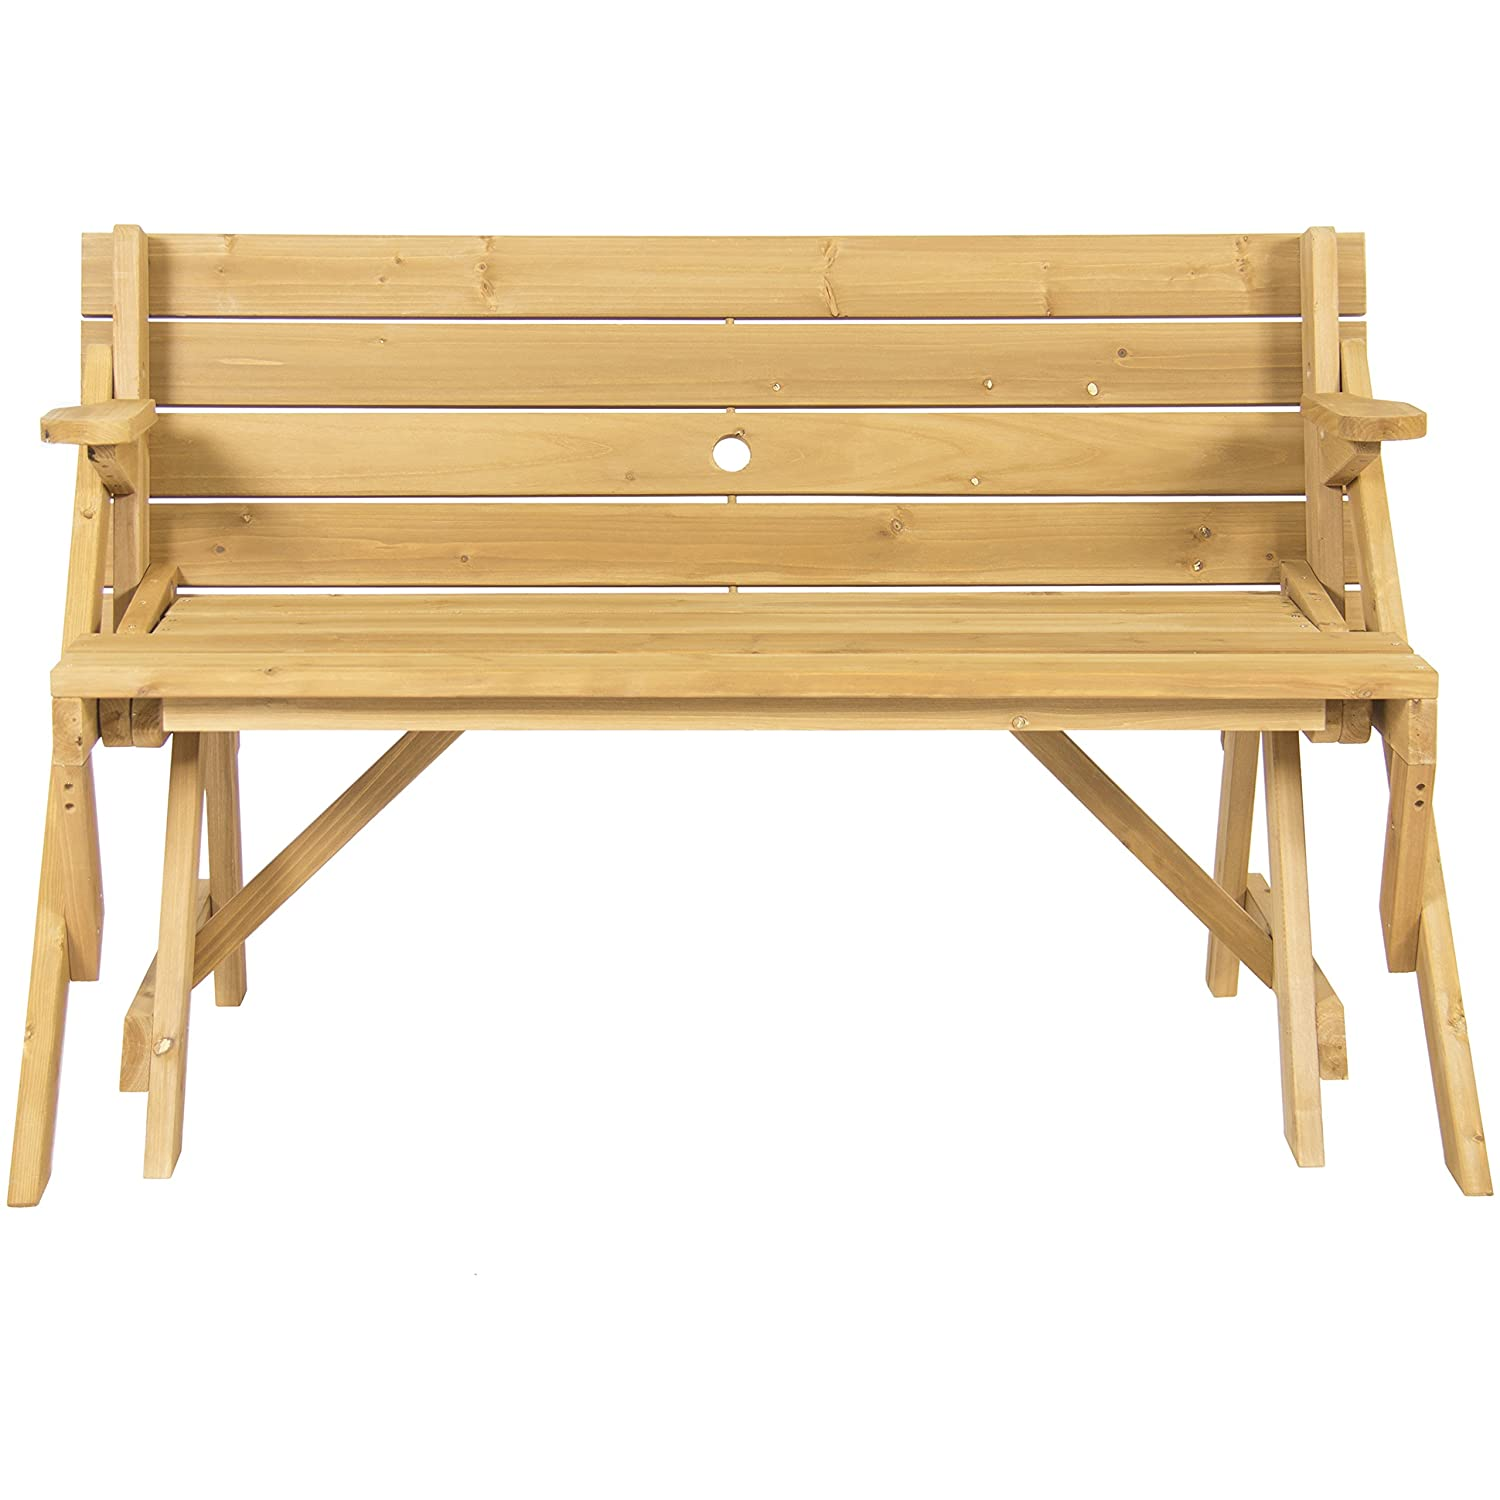 Garden Bench Table Part - 22: Amazon.com : Best Choice Products Patio 2 In 1 Outdoor Interchangeable Picnic  Table / Garden Bench Wood : Garden U0026 Outdoor